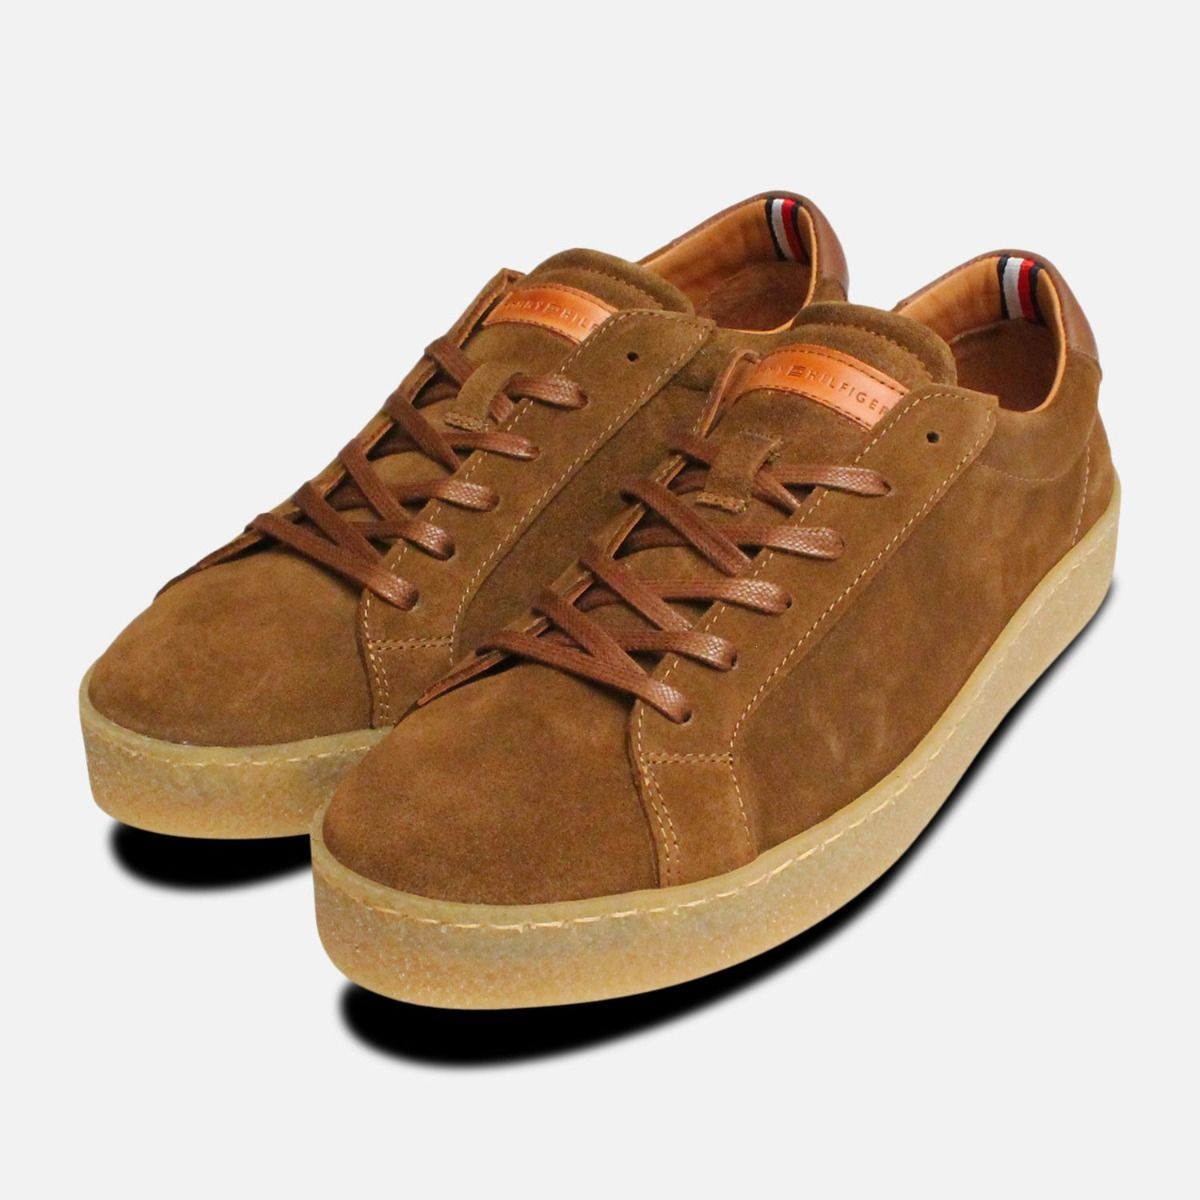 29a204513c6 Tommy Hilfiger Luxury Tobacco Suede Cupsole Shoes